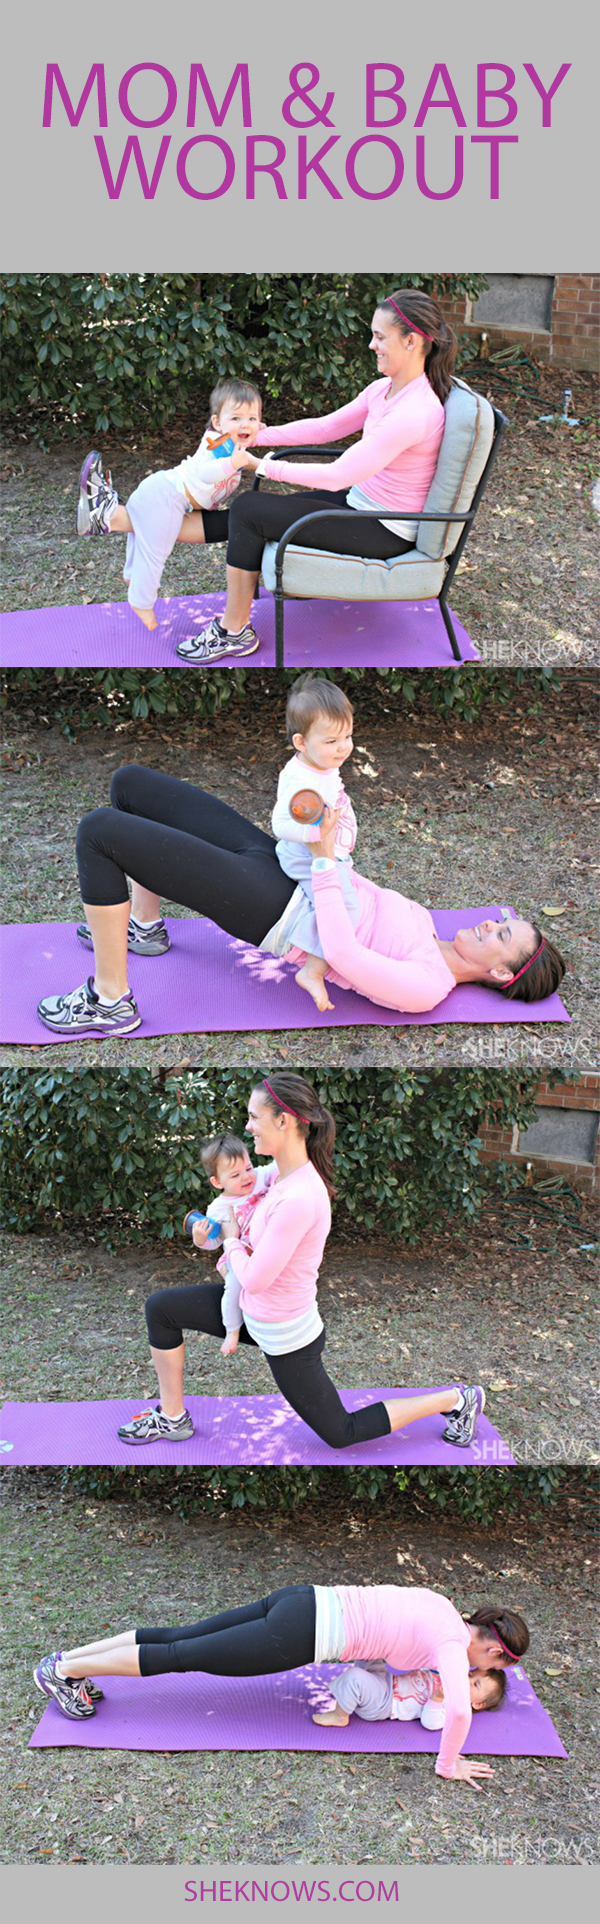 Pin it! Mom & baby exercises